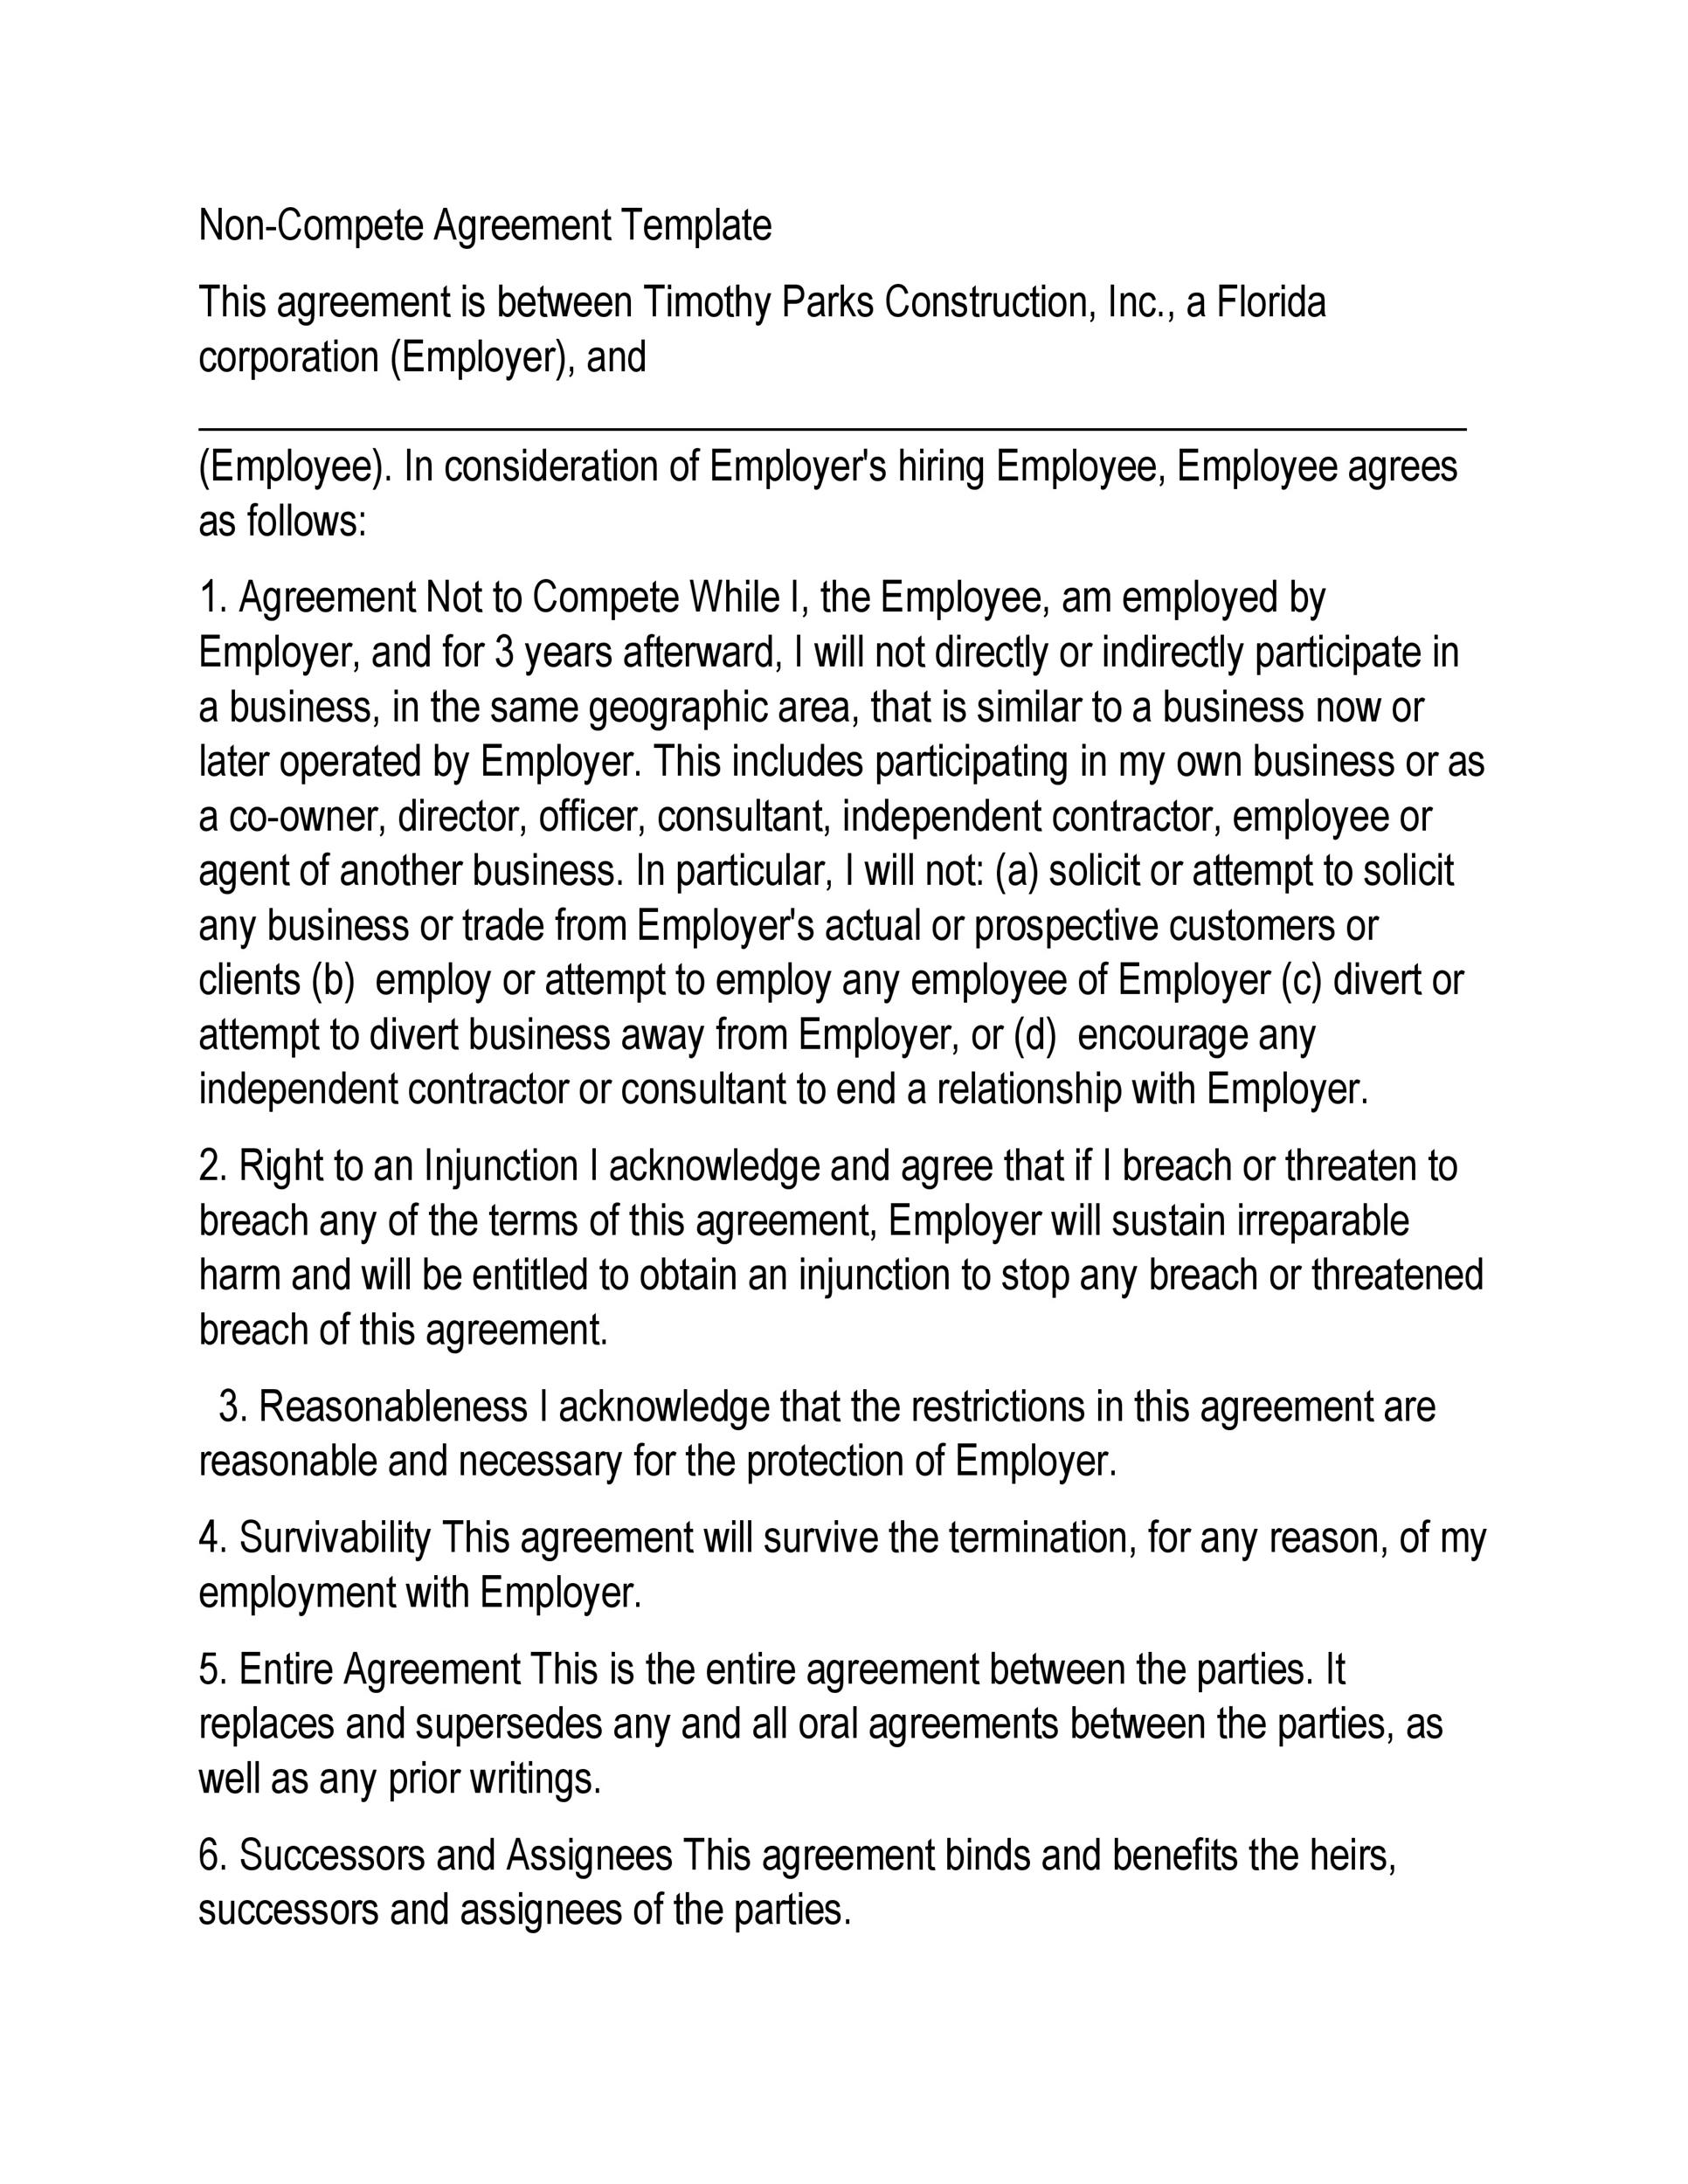 Non-Compete Agreement Template 01